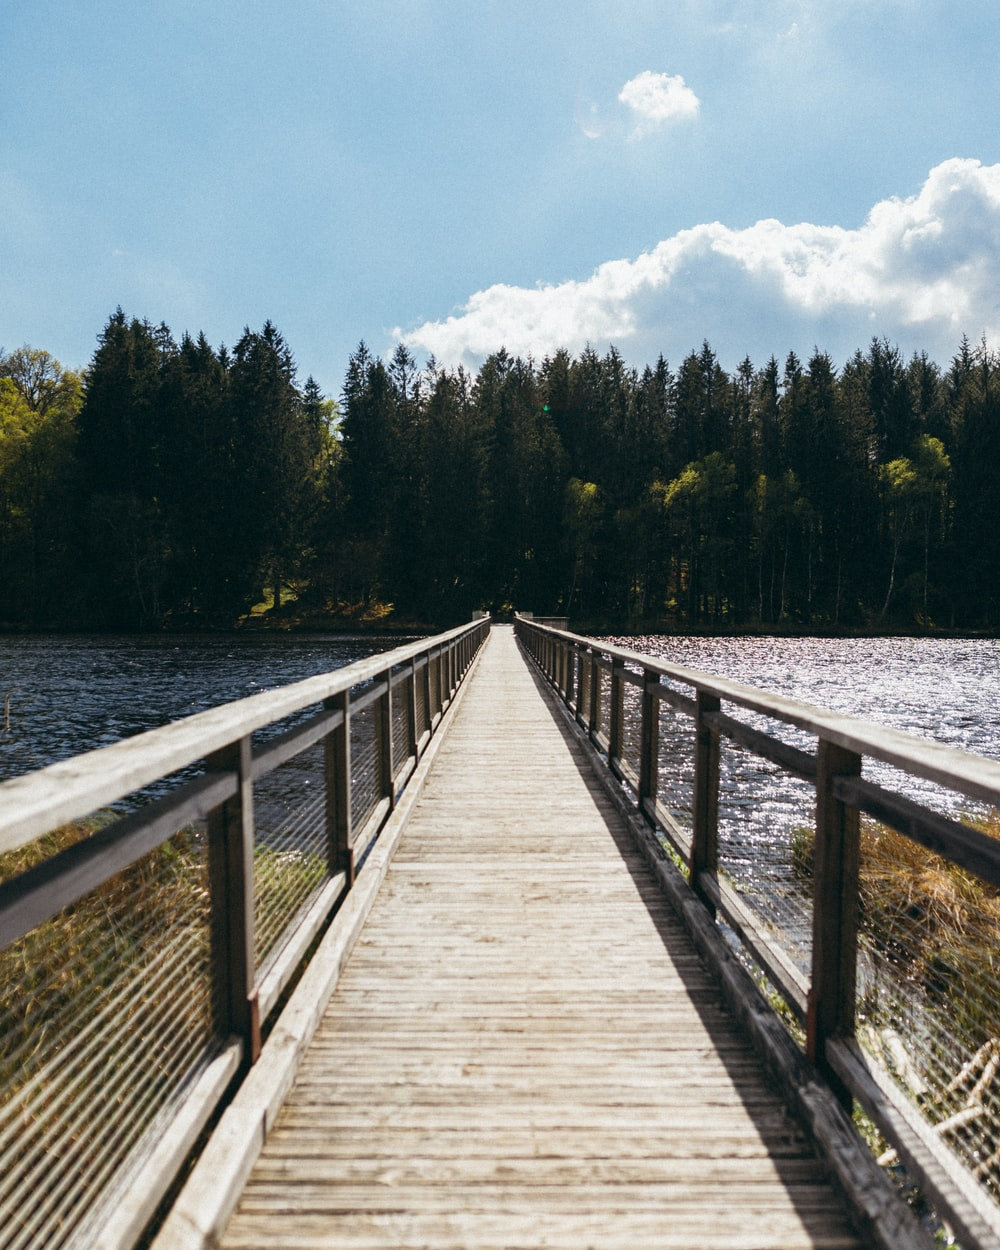 brown wooden bridge over body of water and forest during day